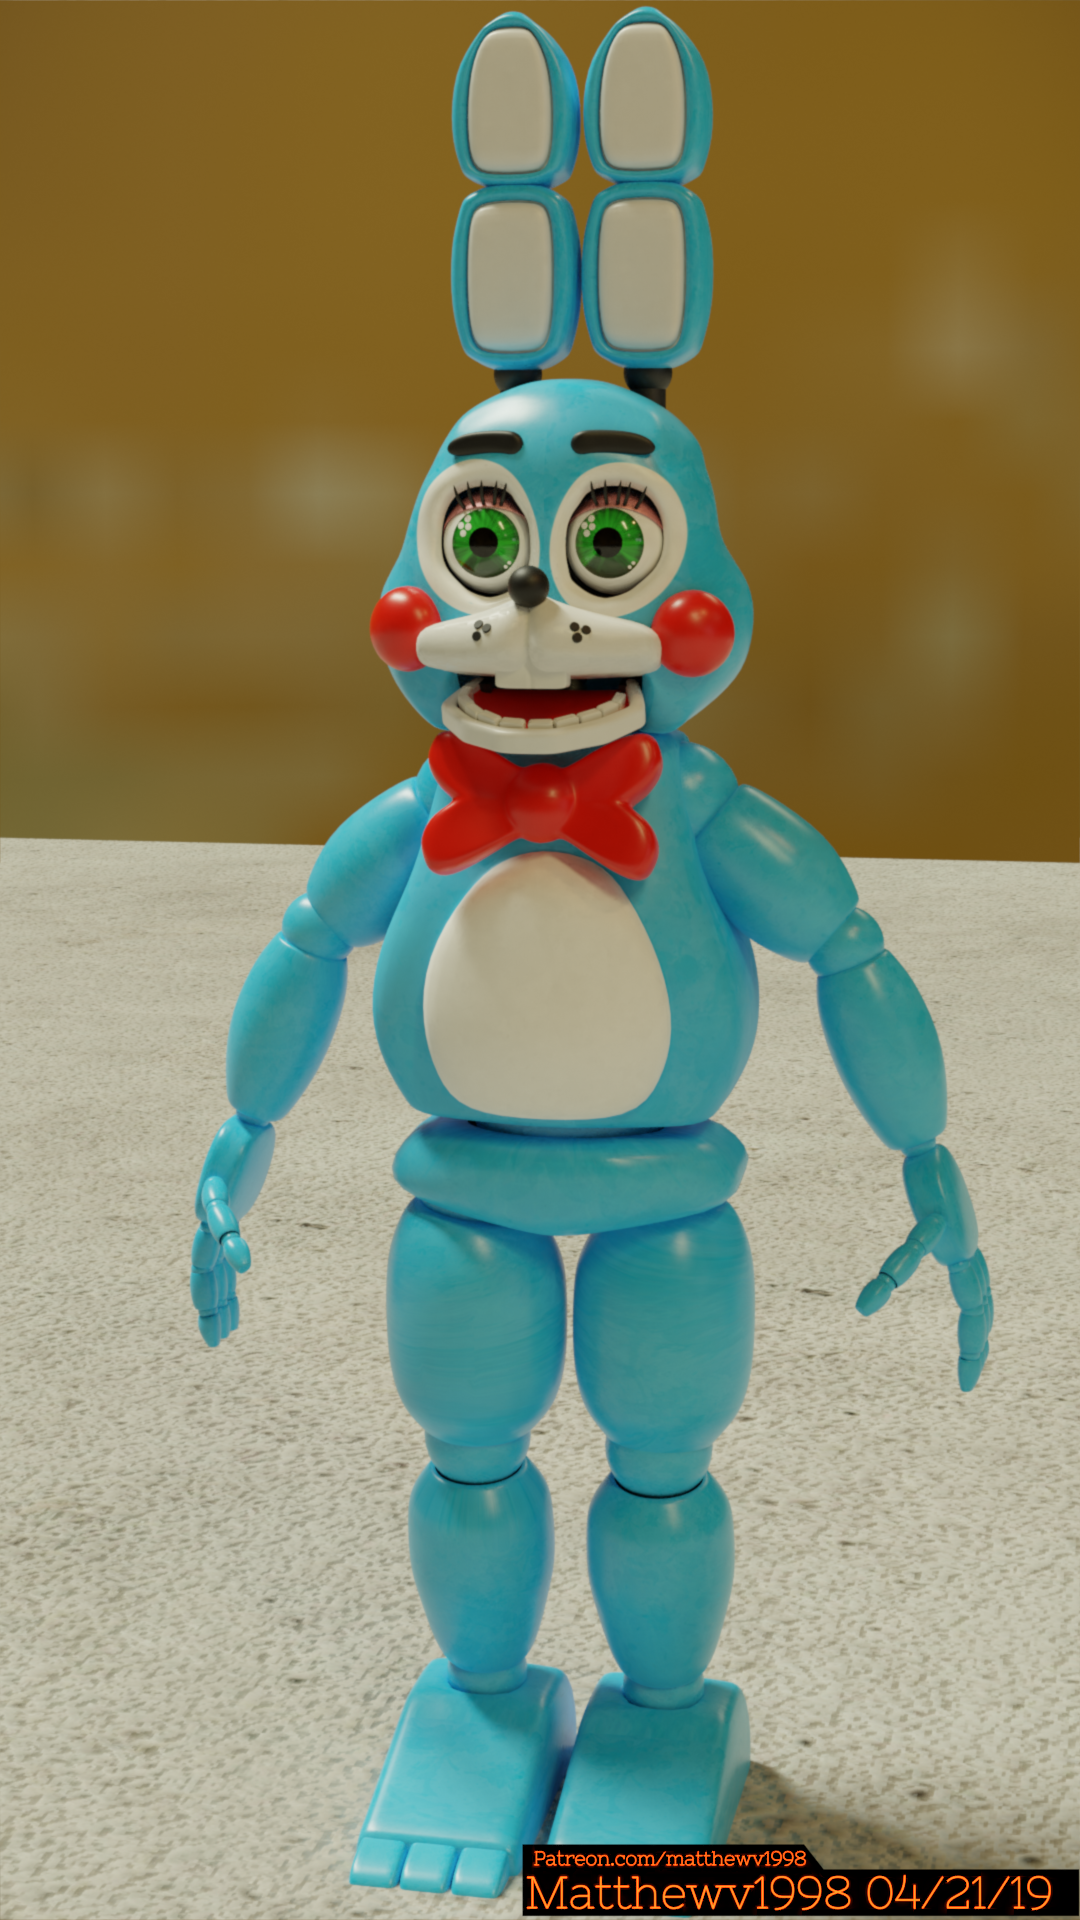 Homegrown Toy Bonnie Model By Matthewv1998 On Newgrounds